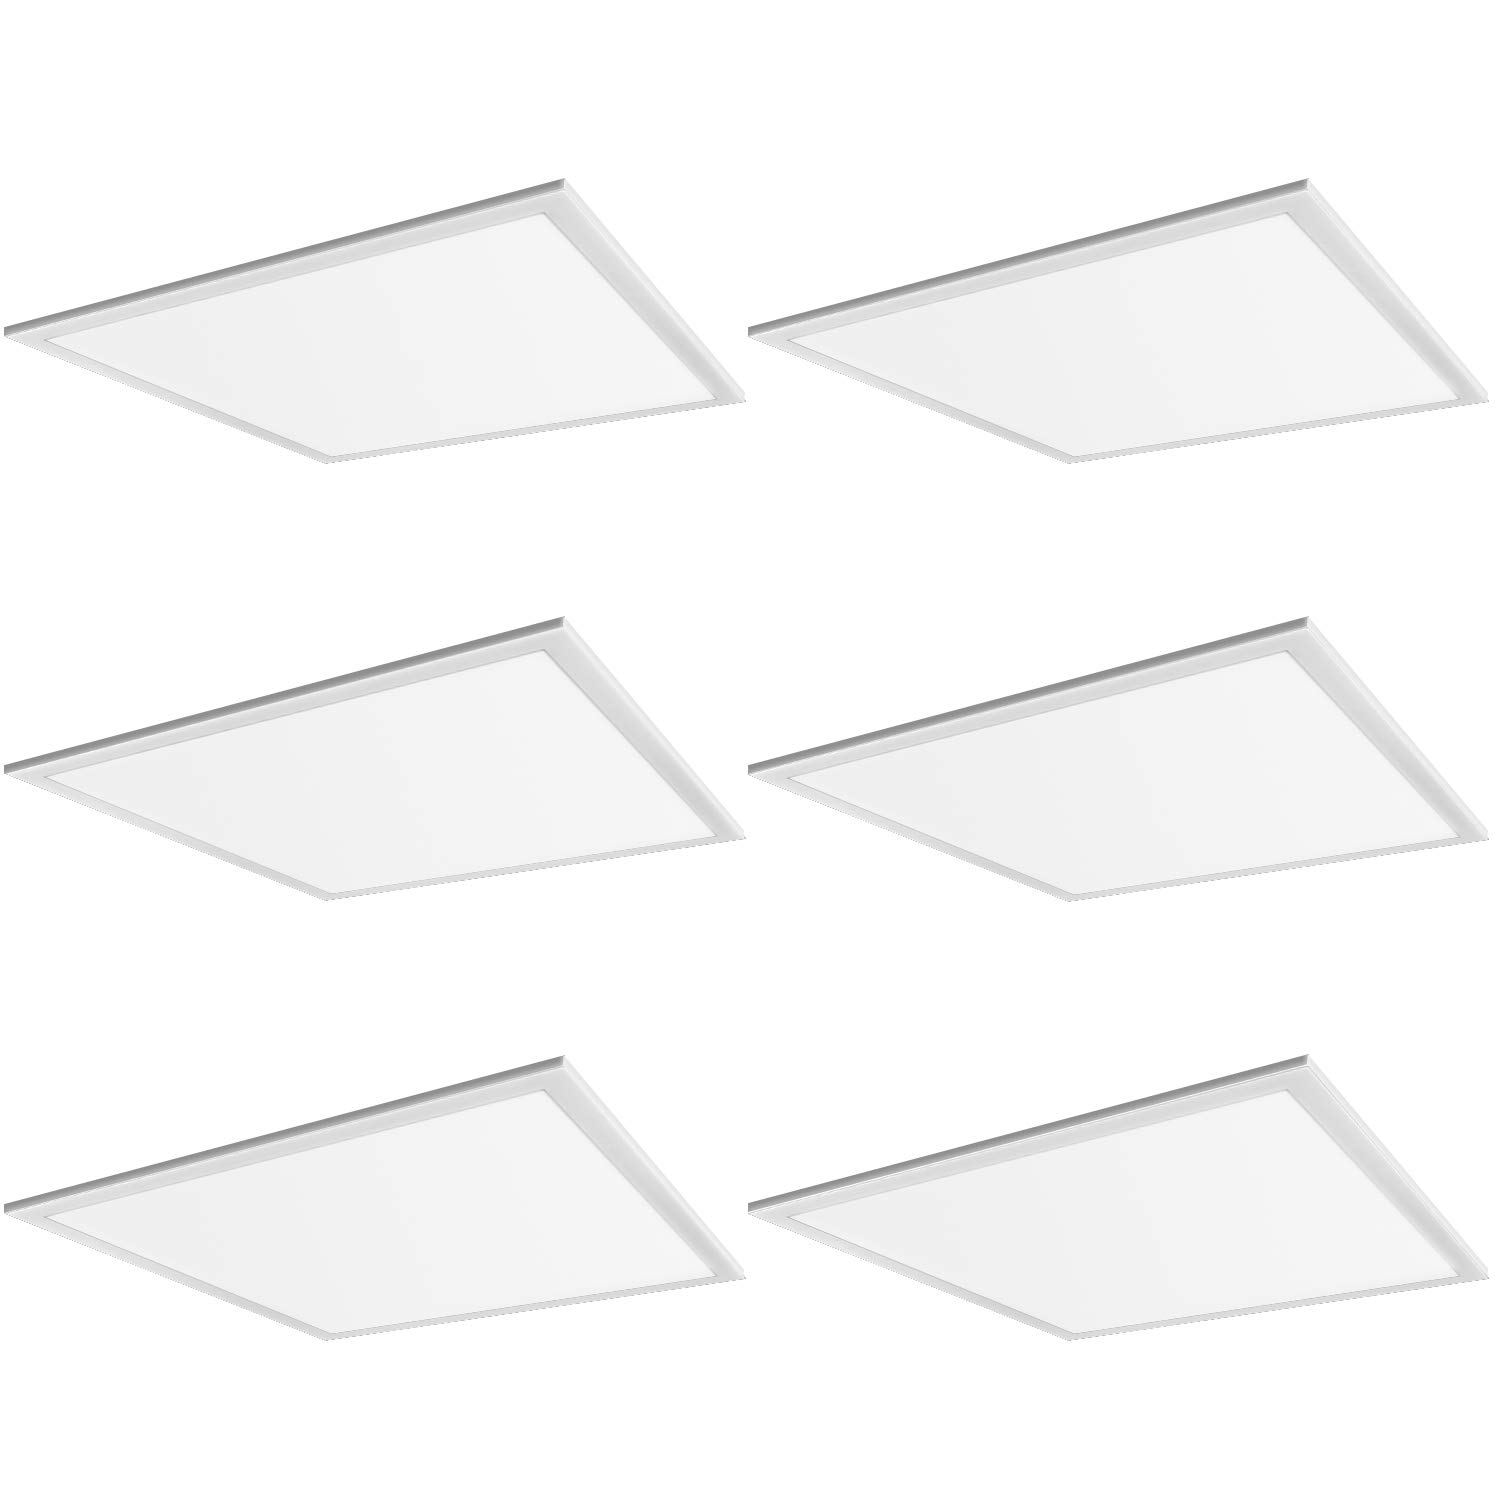 Hykolity 6 Pack 2x2 FT 40W 5000lm Lay-in LED Troffer Panel Light, 1-10V Dimmable Recessed Edge-Lit Troffer Fixture, Drop Ceiling Flat Panel Light, Repalce 2-Lamp T8 Fluorescent Troffer by hykolity (Image #1)